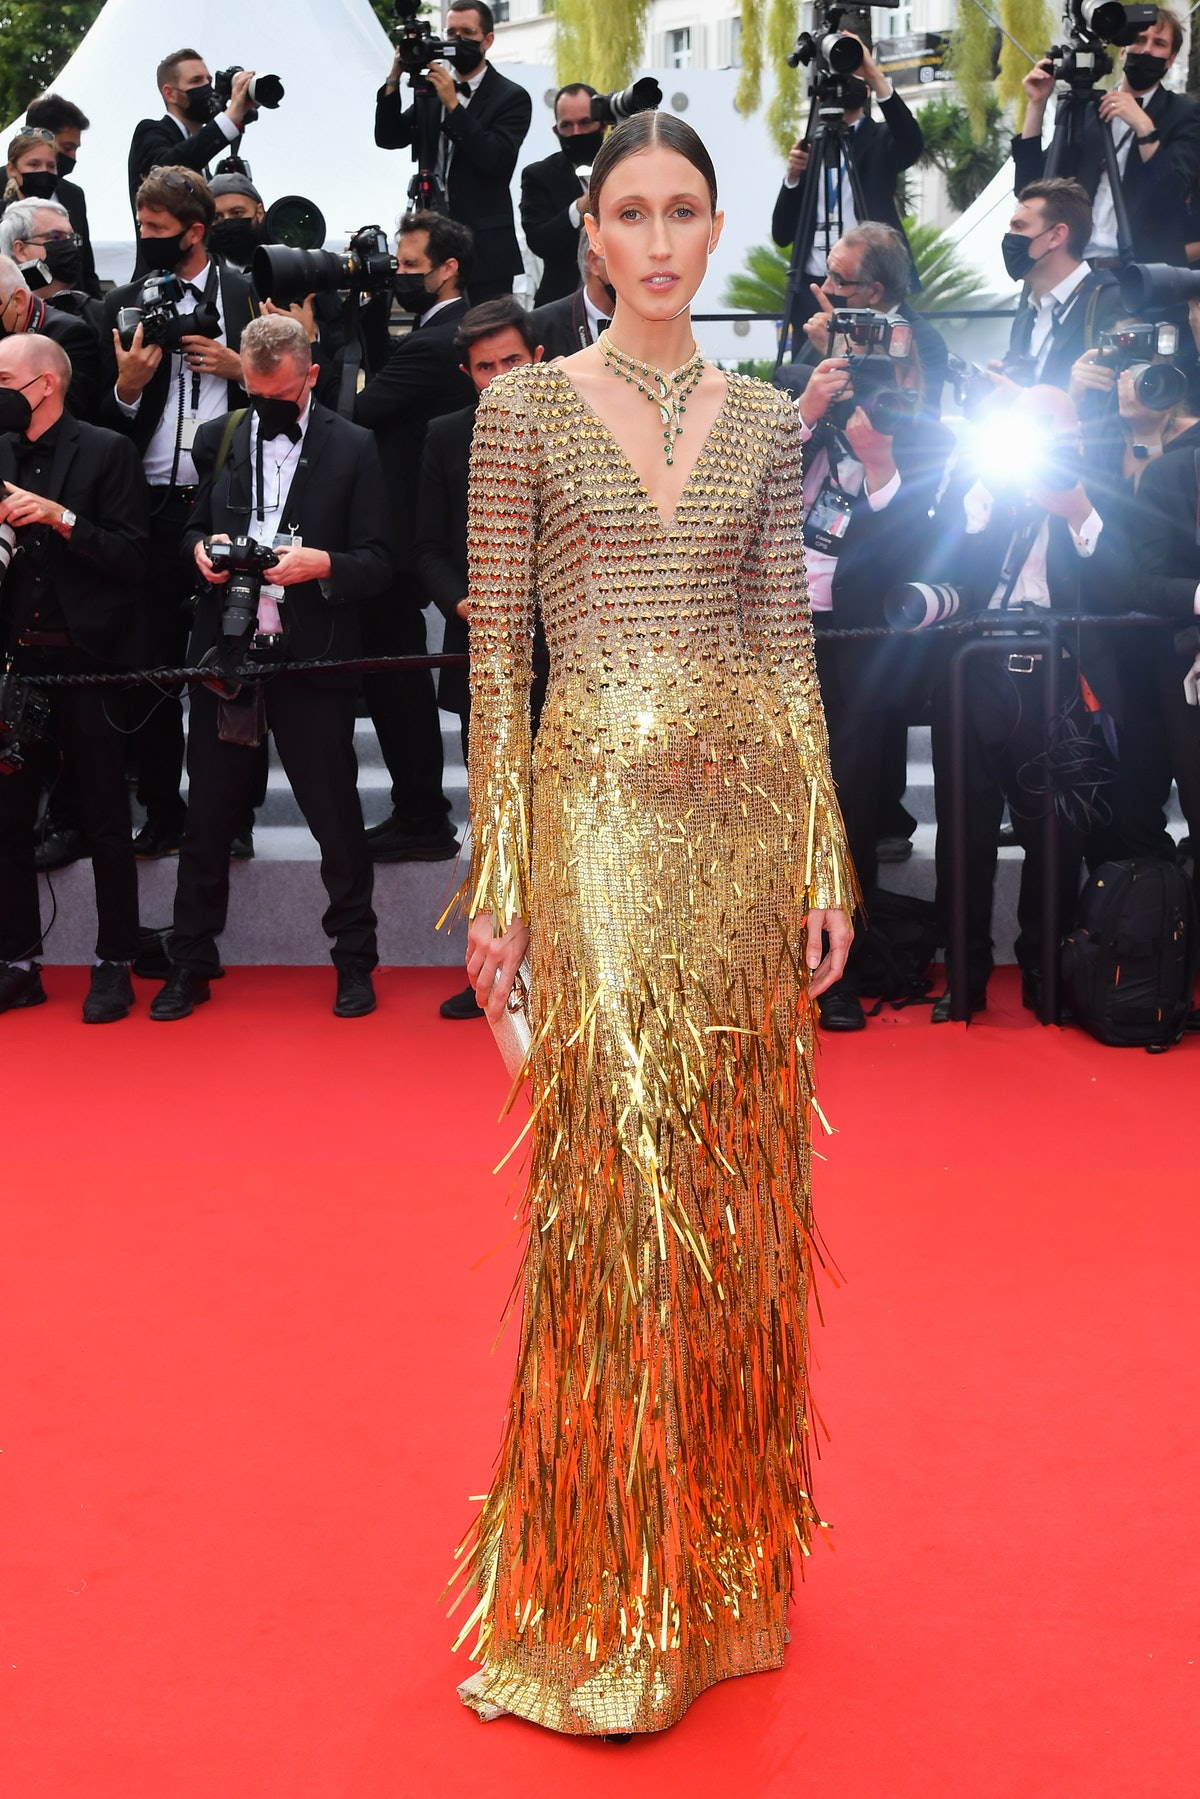 Anna Cleveland wearing shiny gold gown